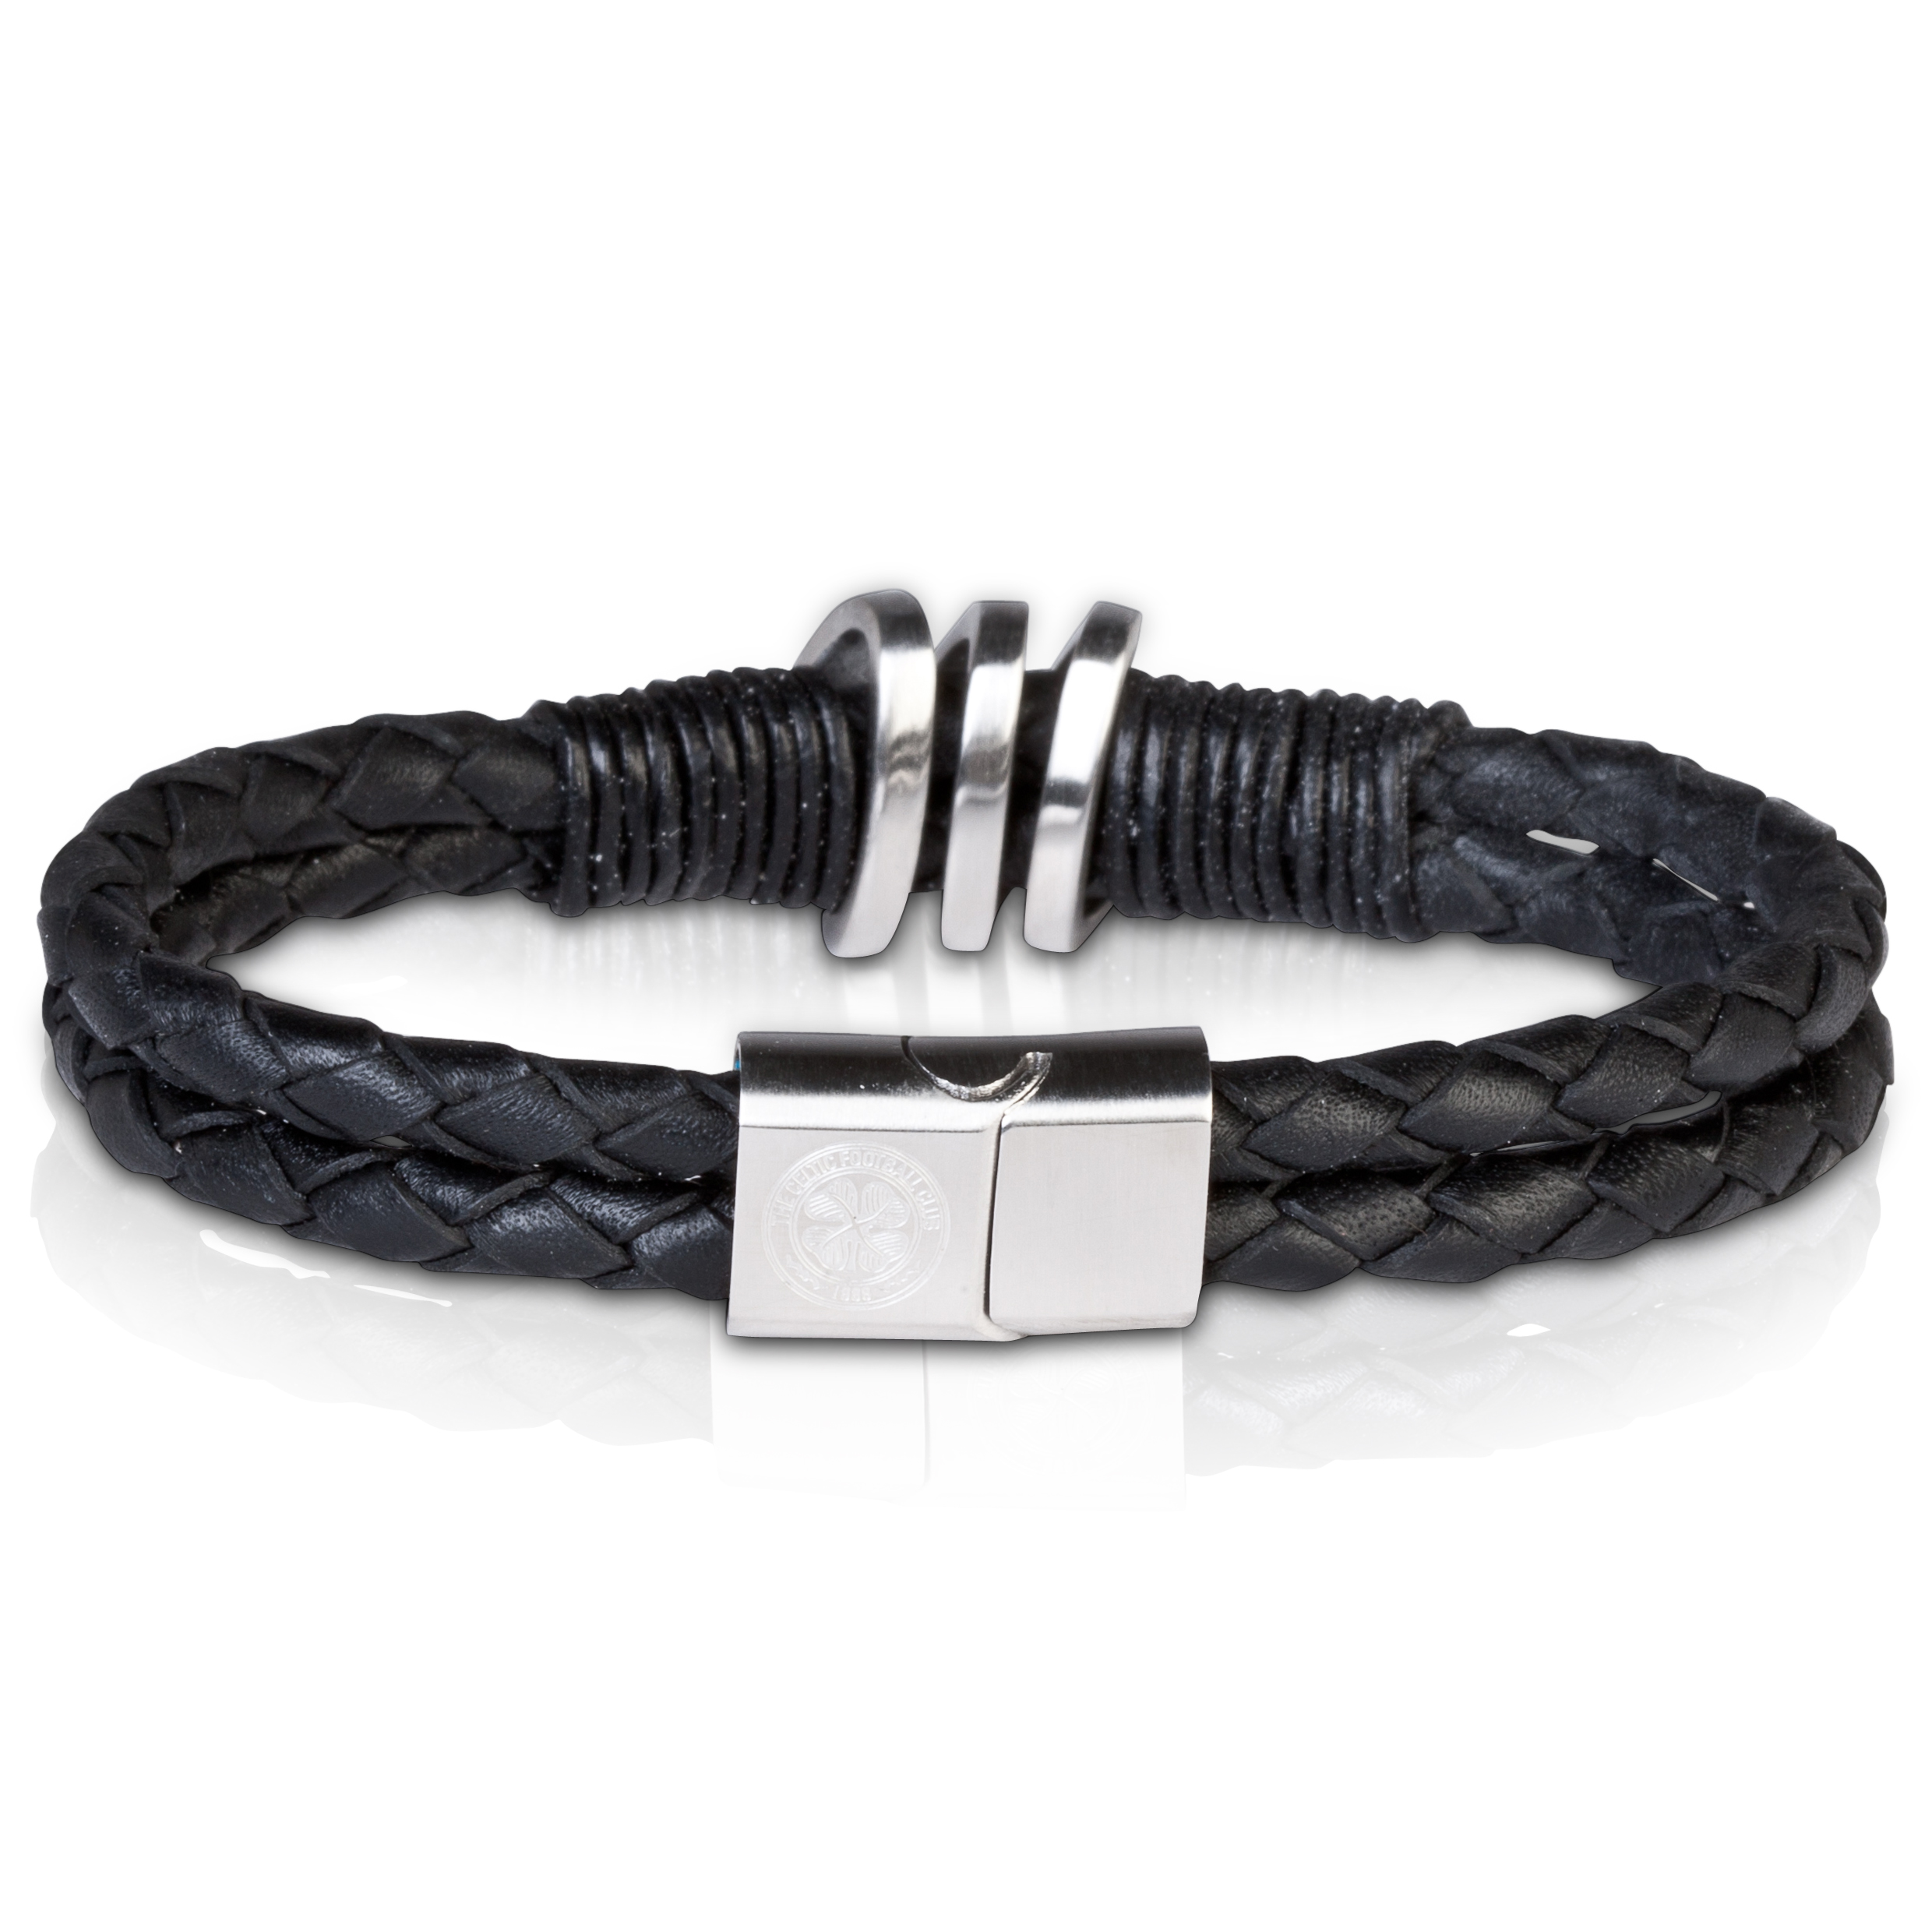 Celtic Black Leather Bracelet - Stainless Steel